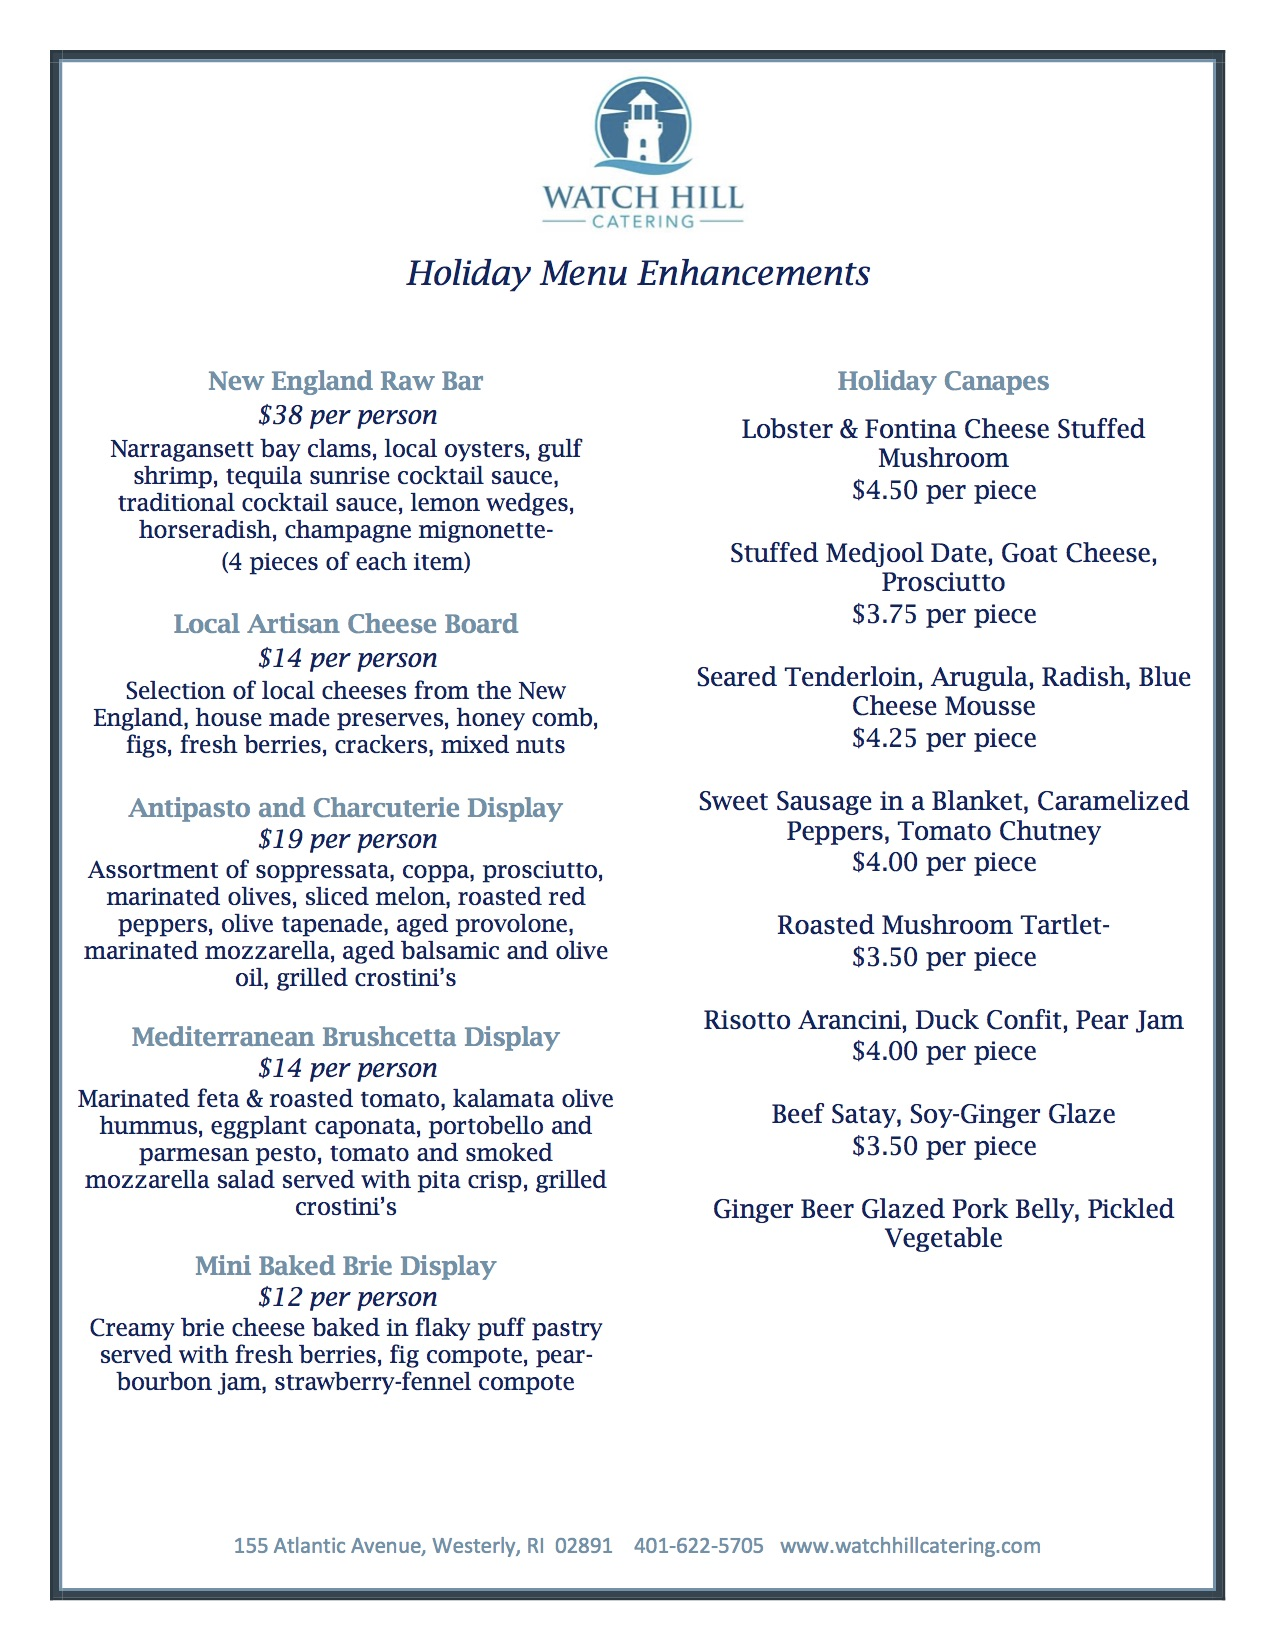 Watch Hill Catering Holiday Menus Pg 2